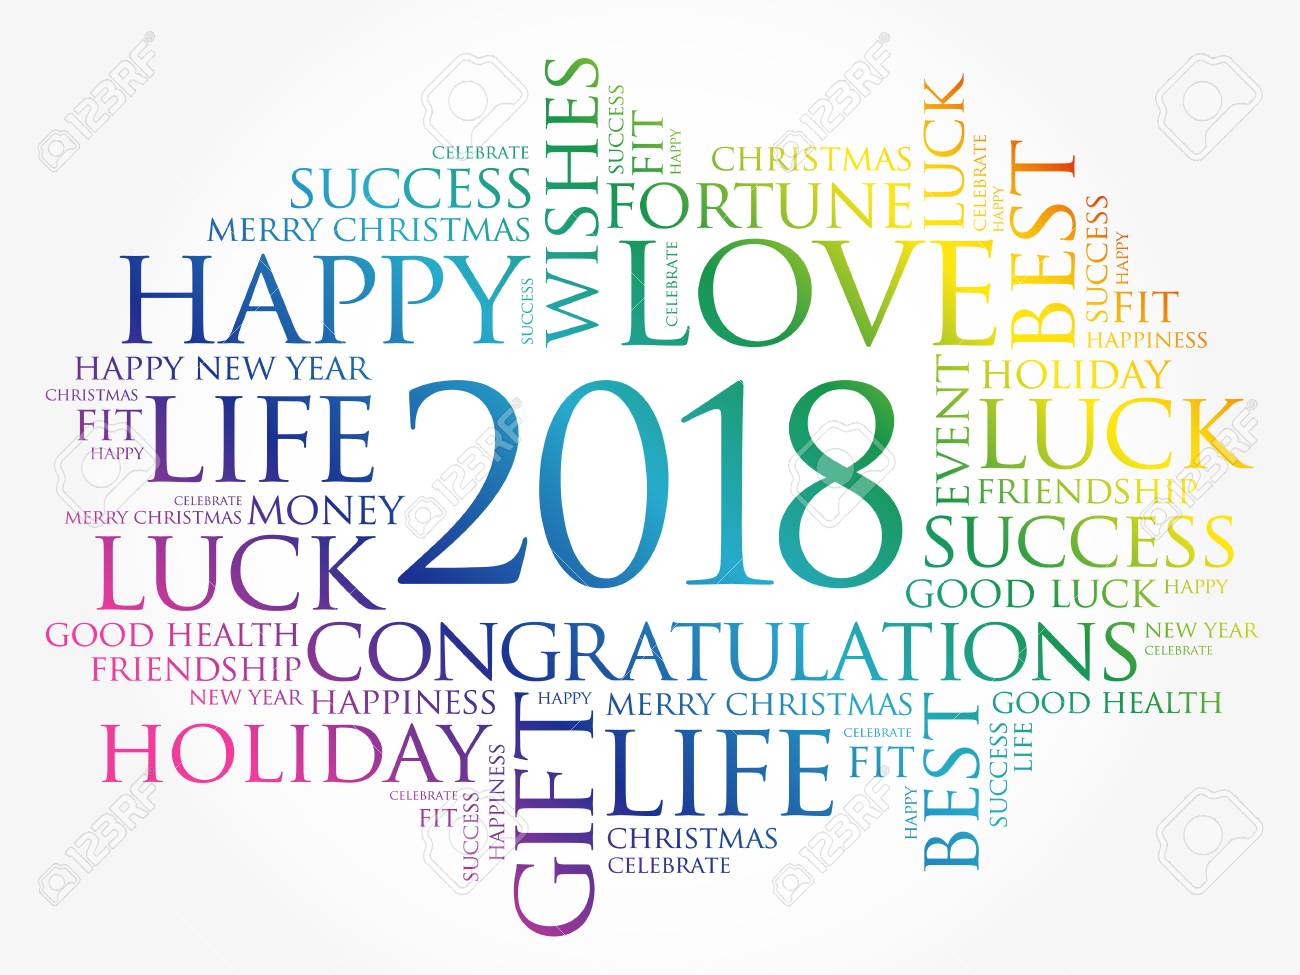 2018 year greeting word cloud collage happy new year celebration greeting card stock vector